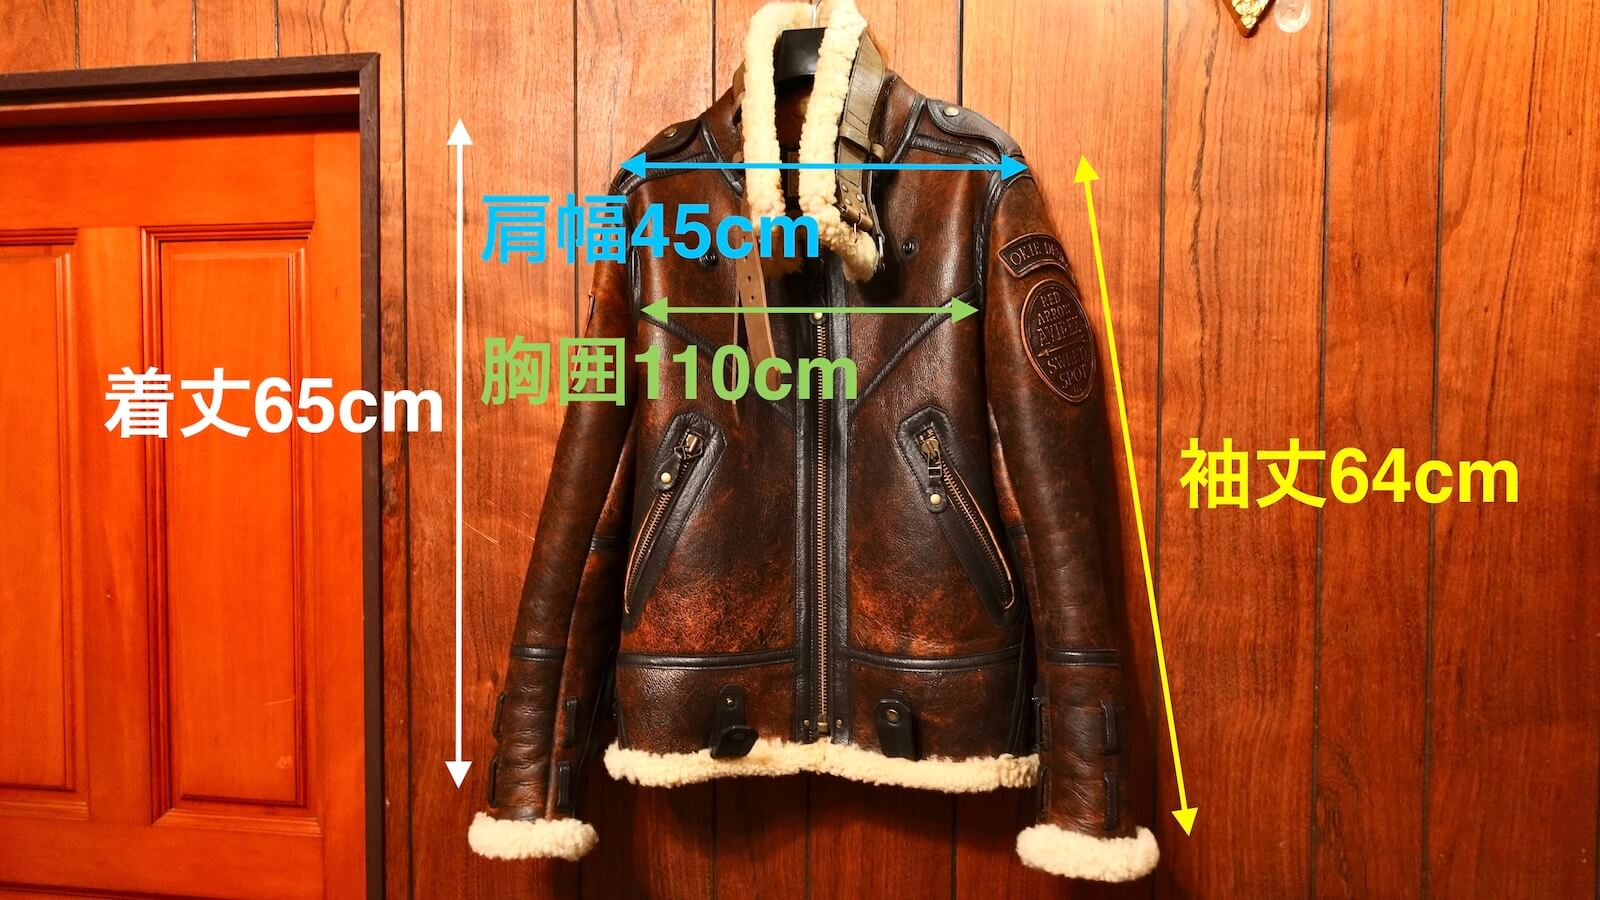 AVIREX BELTED MOUTON B3 M size photo with each dimension